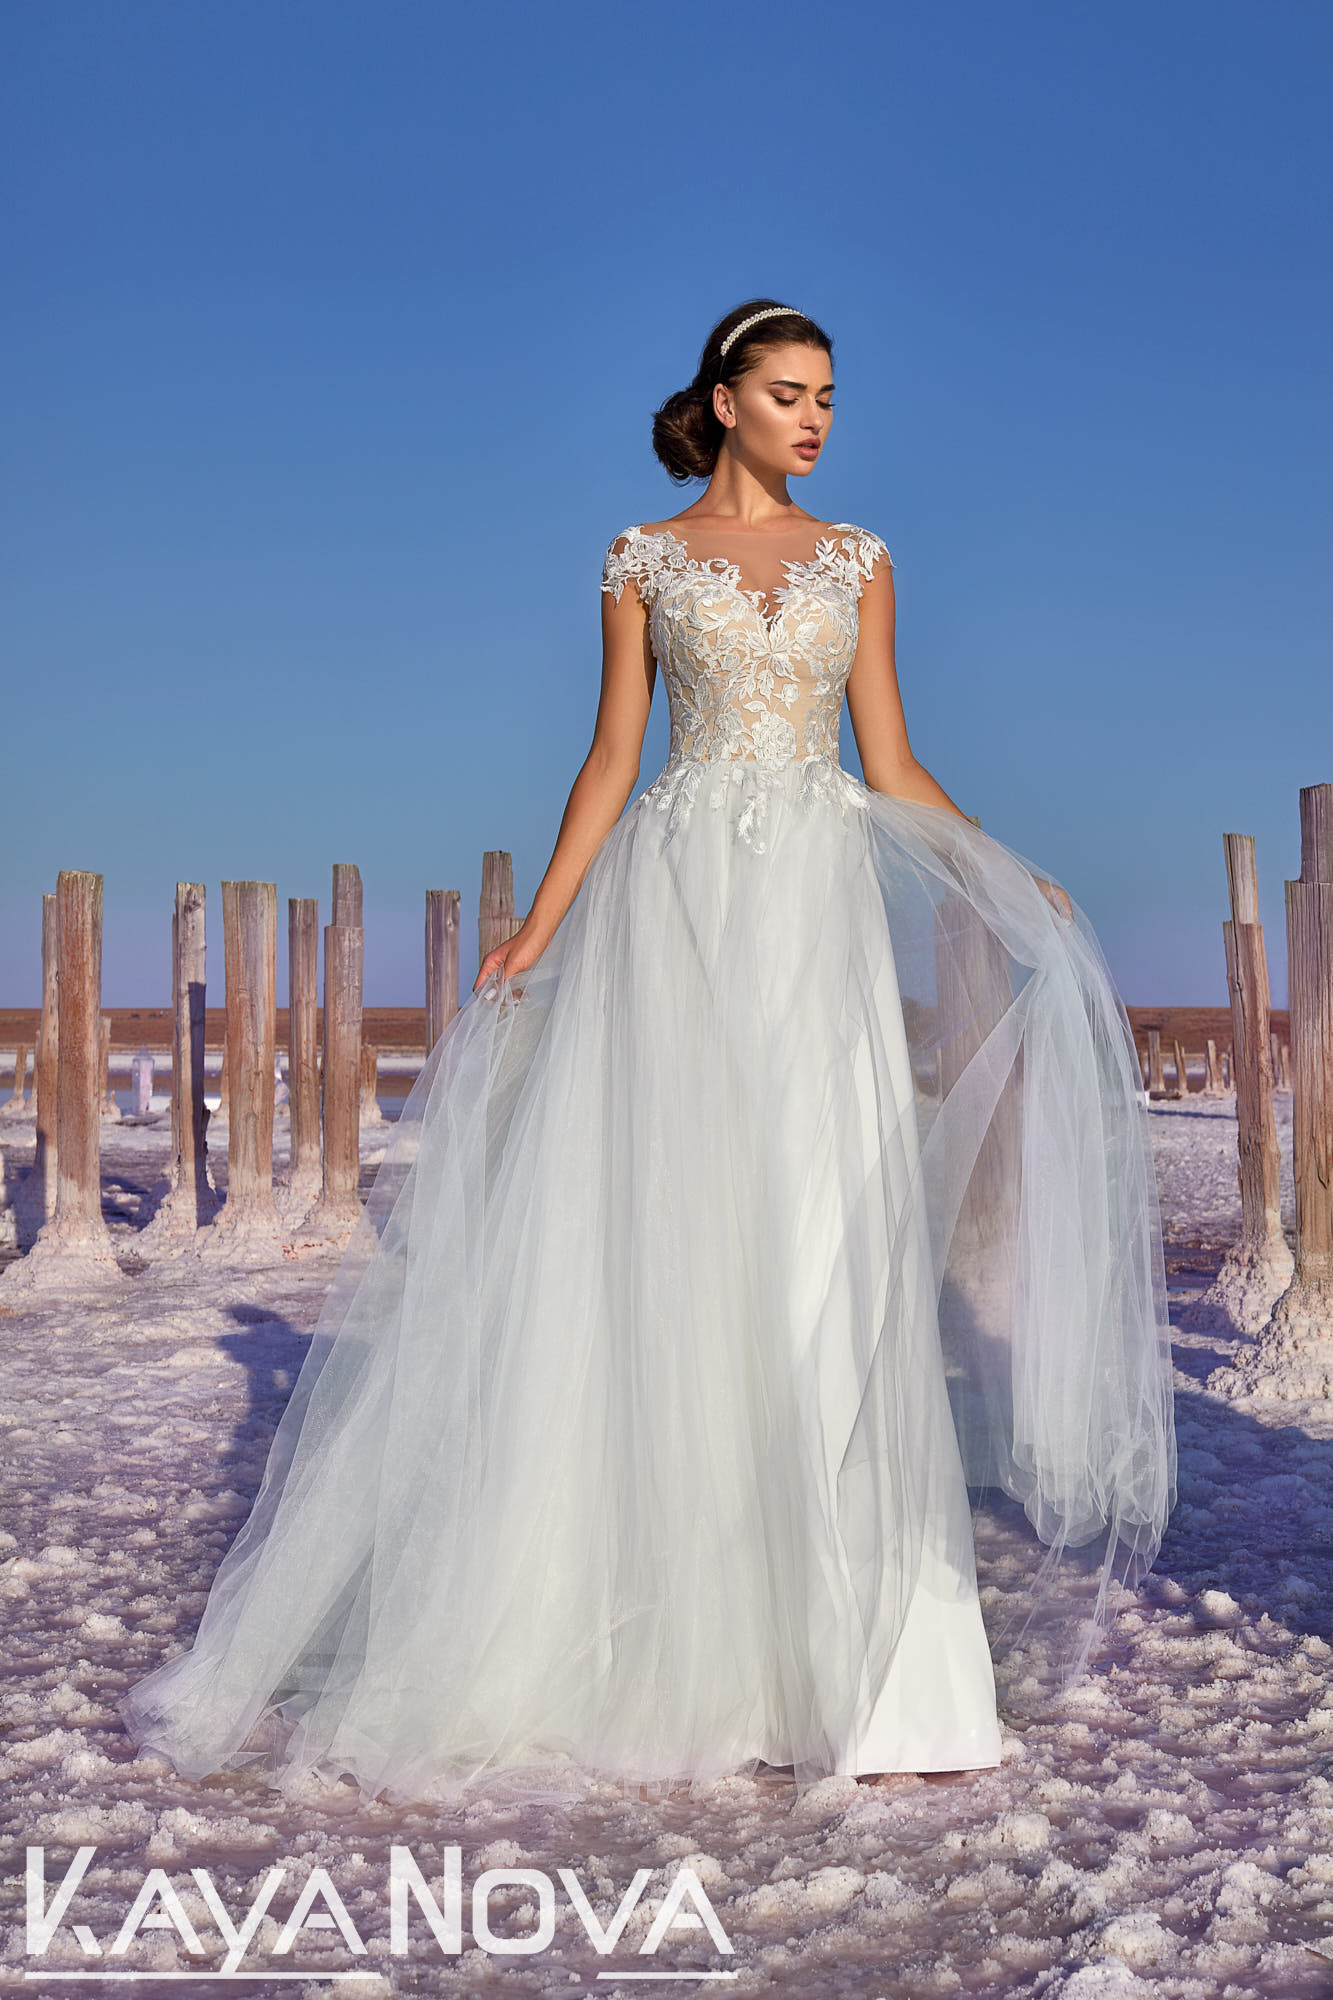 https://kayawedding.com/images/stories/virtuemart/product/344A2955.jpg